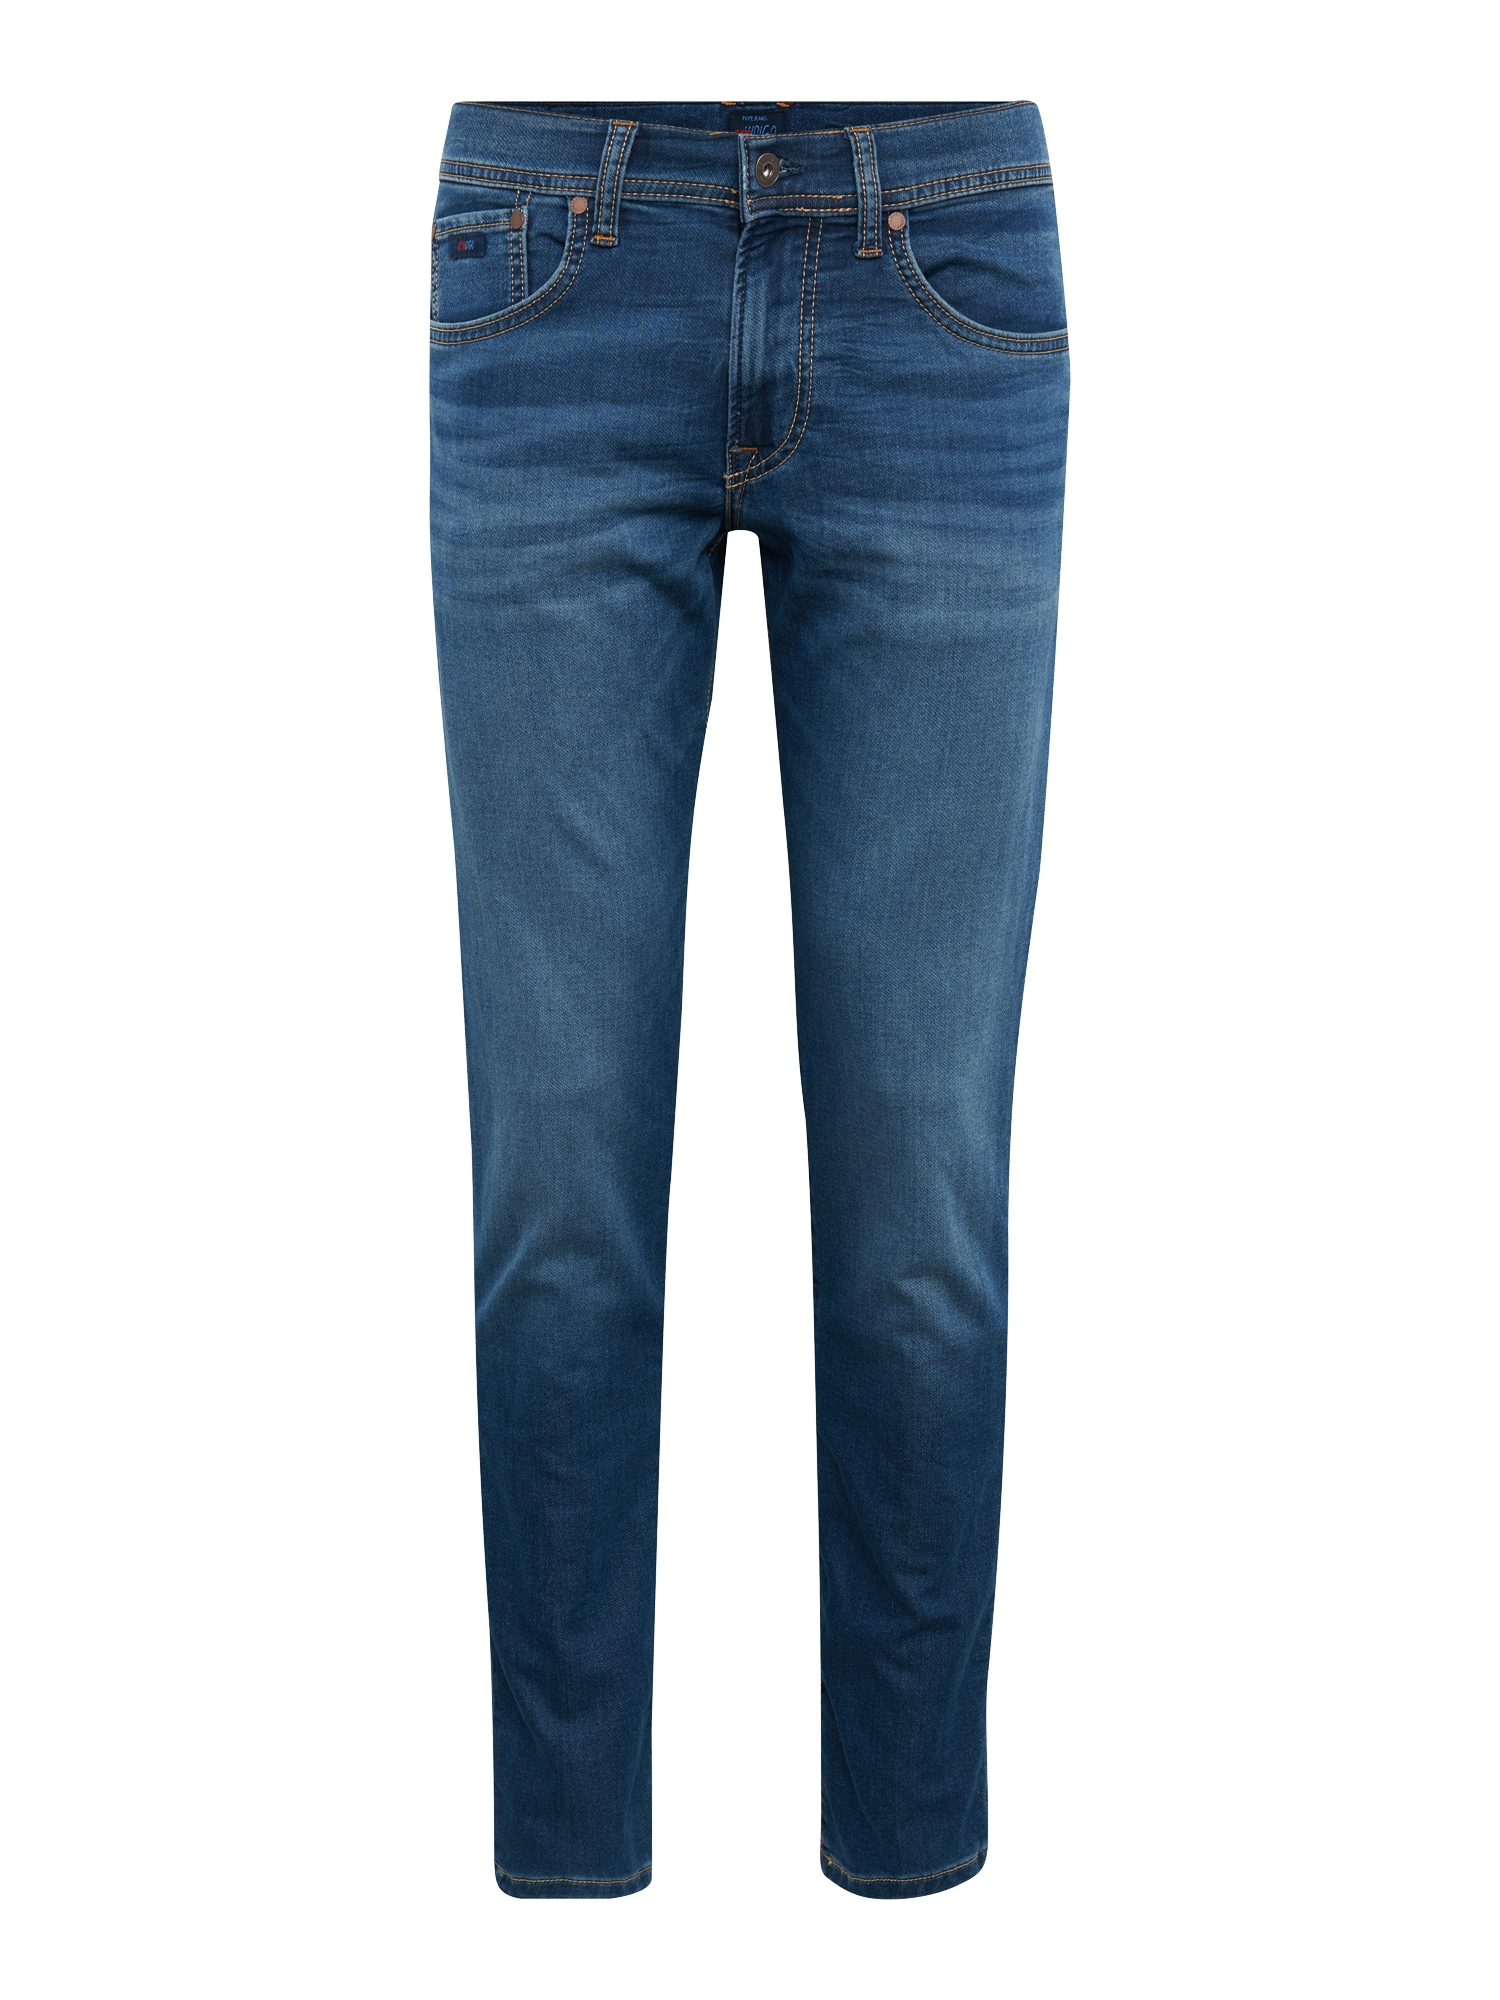 Pepe Jeans Heren Jeans Cane blauw denim